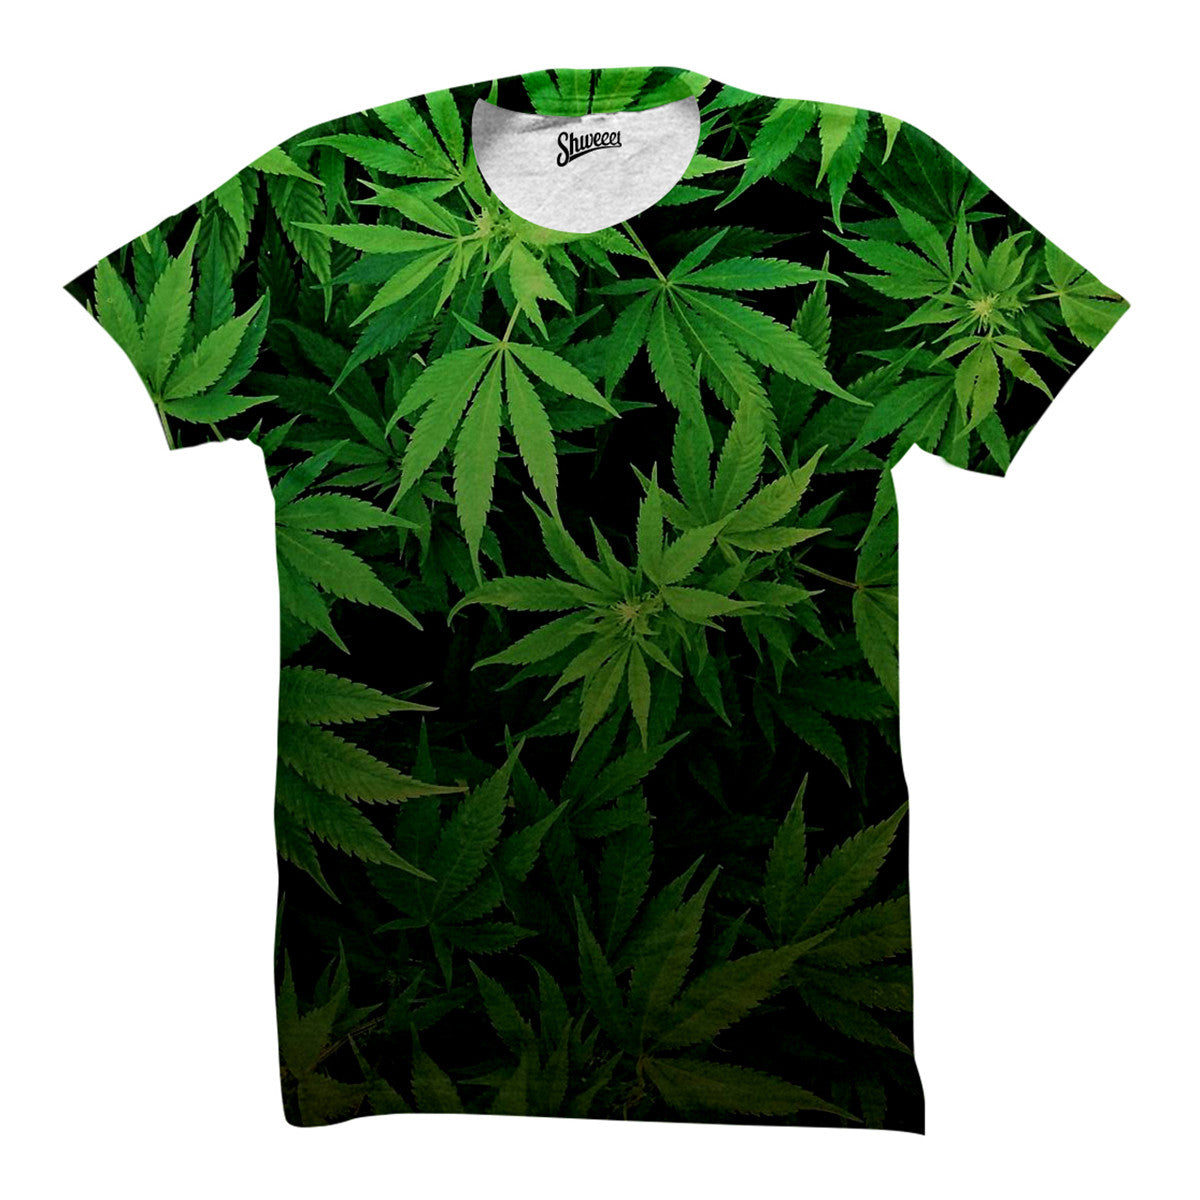 Weed Leaves Shirt - Shweeet